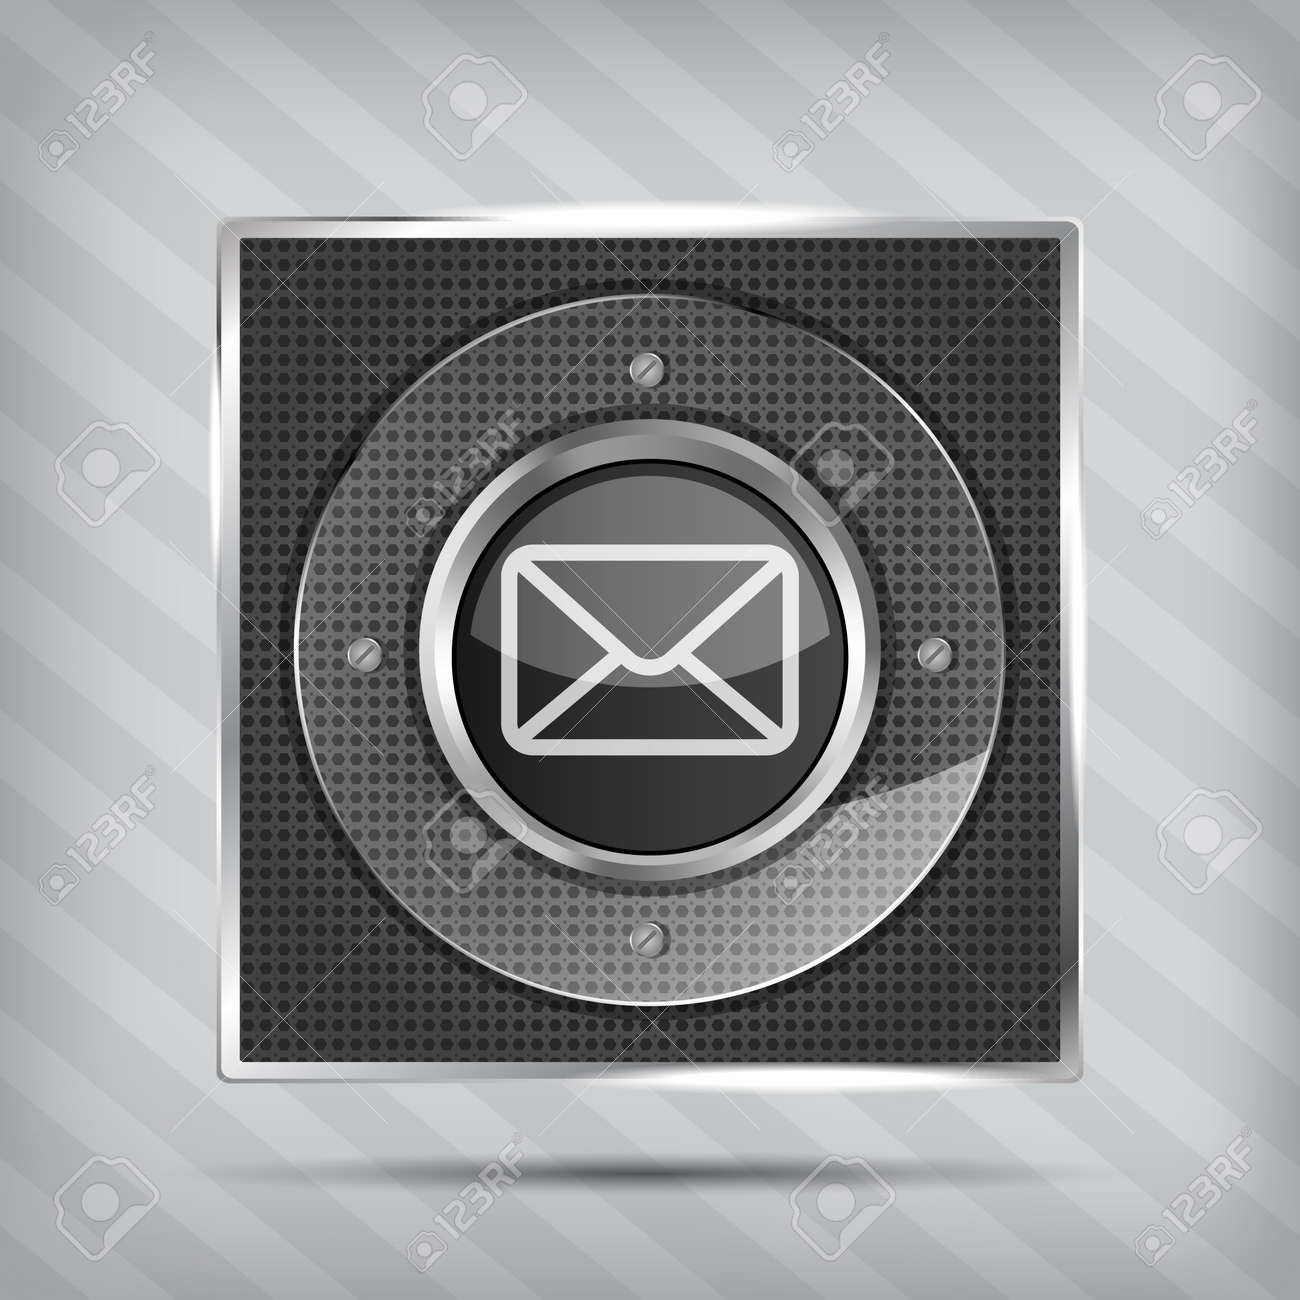 email button icon on the metallic background Stock Vector - 17477217